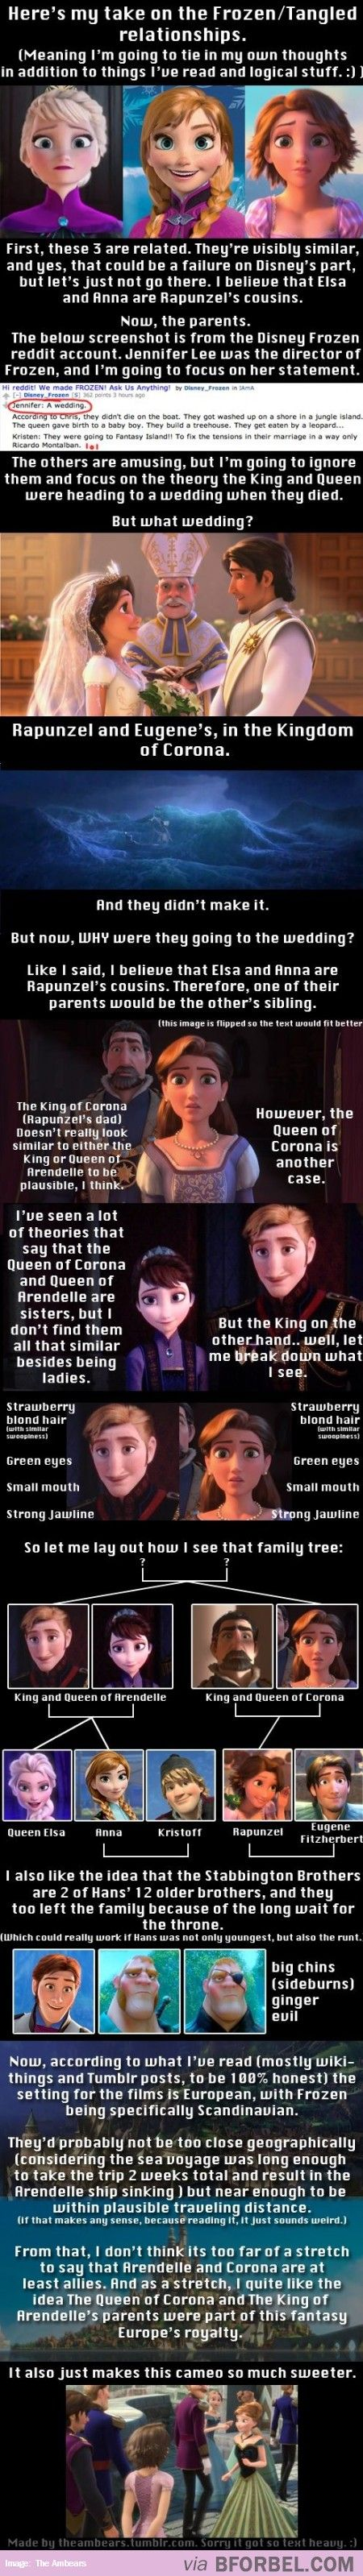 Relationship On Frozen And Tangled…